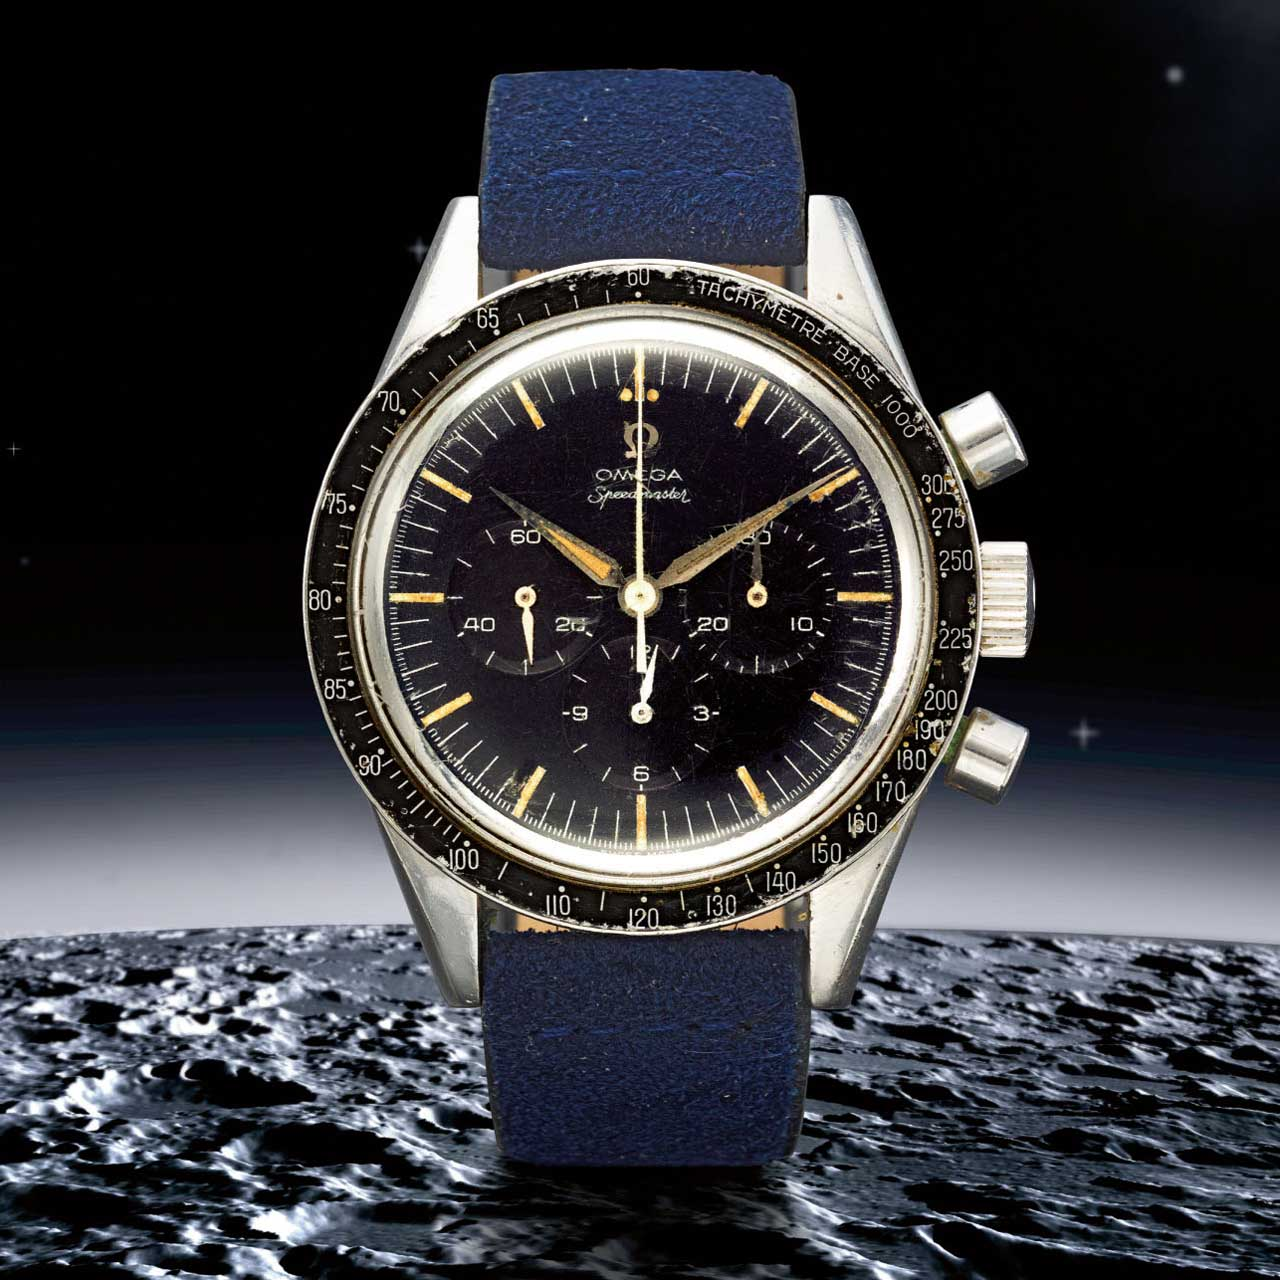 Lot 4: Speedmaster ref. 2915-3, in stainless steel, made in 1959